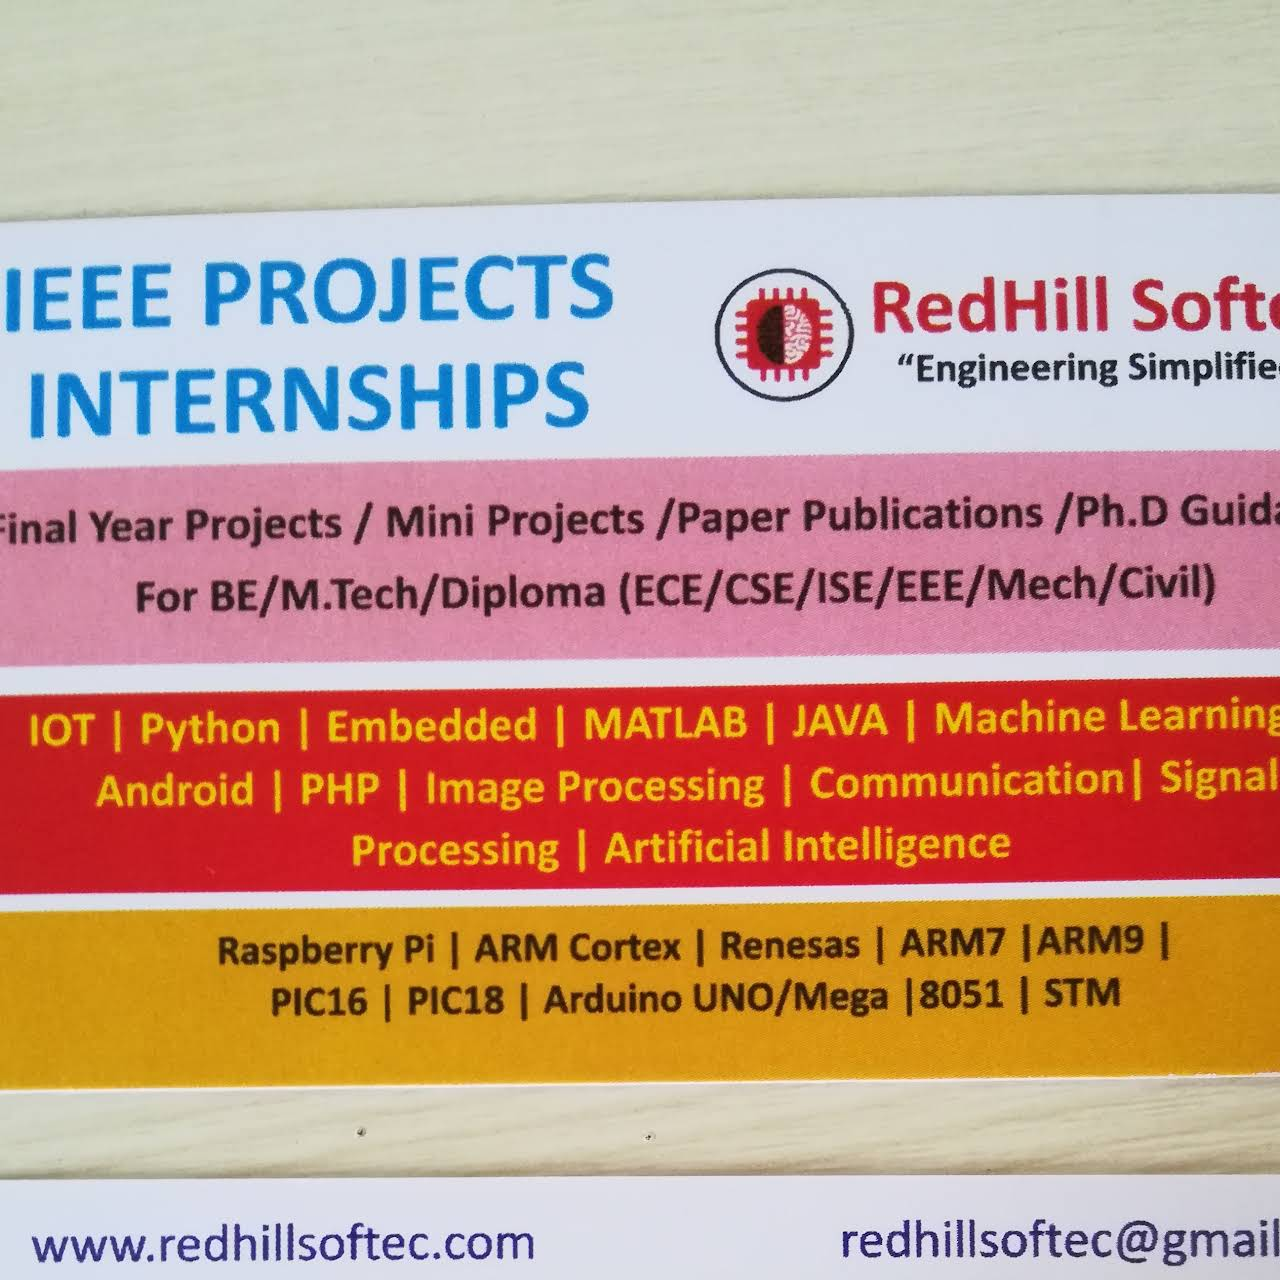 RedHill Softec - Institute Of Technology in Bengaluru